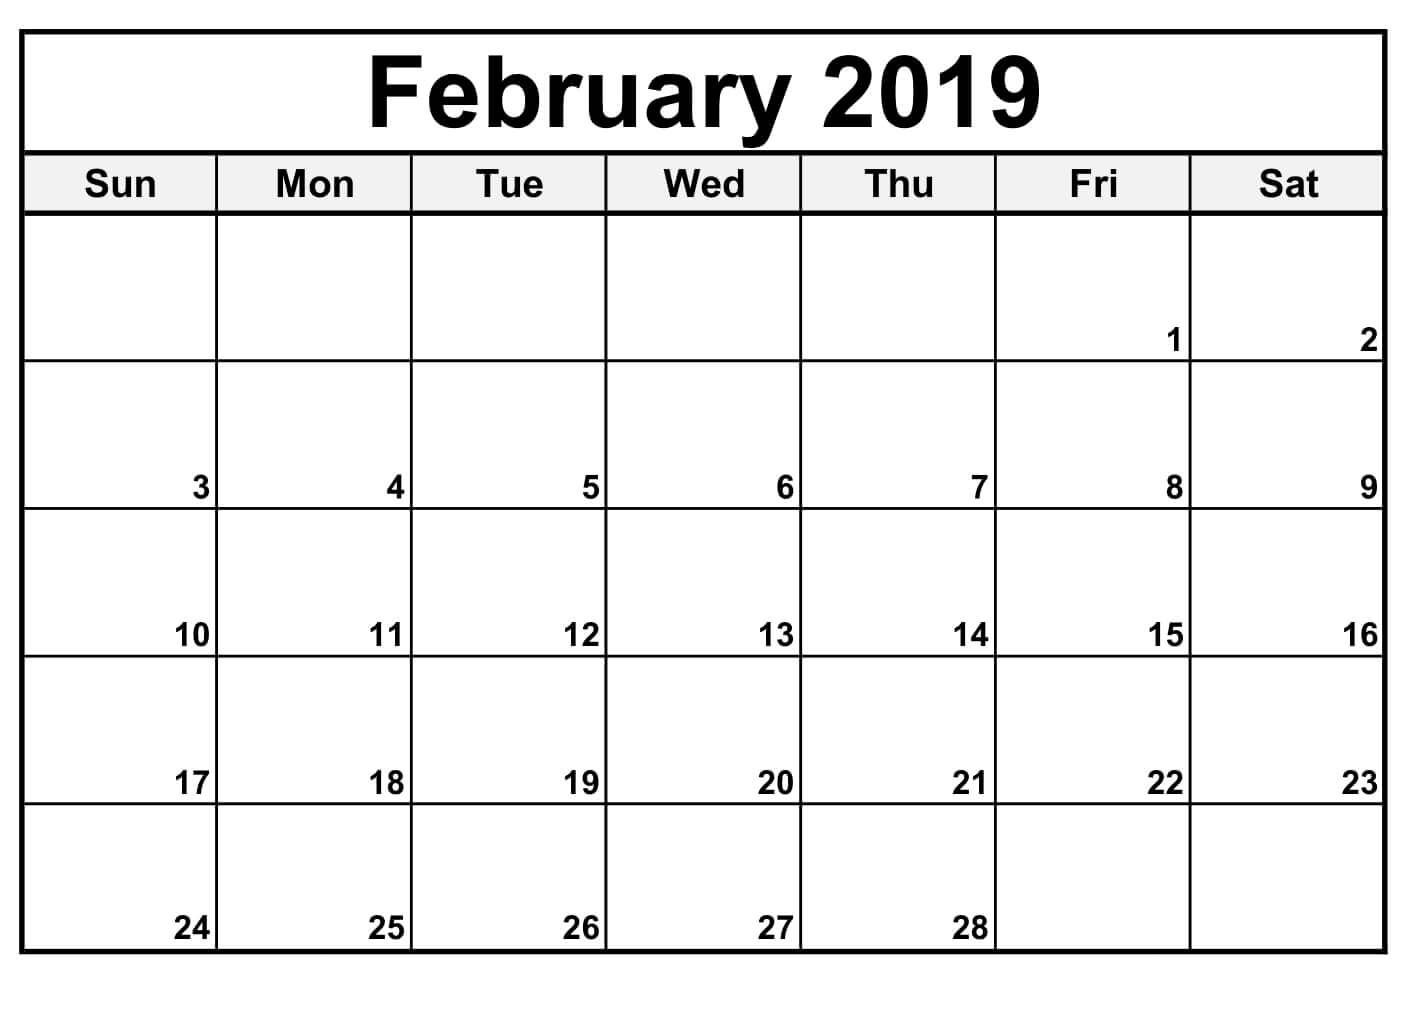 Calendar To Print February 2019 Calendar For February 2019   Free Printable Calendar, Templates